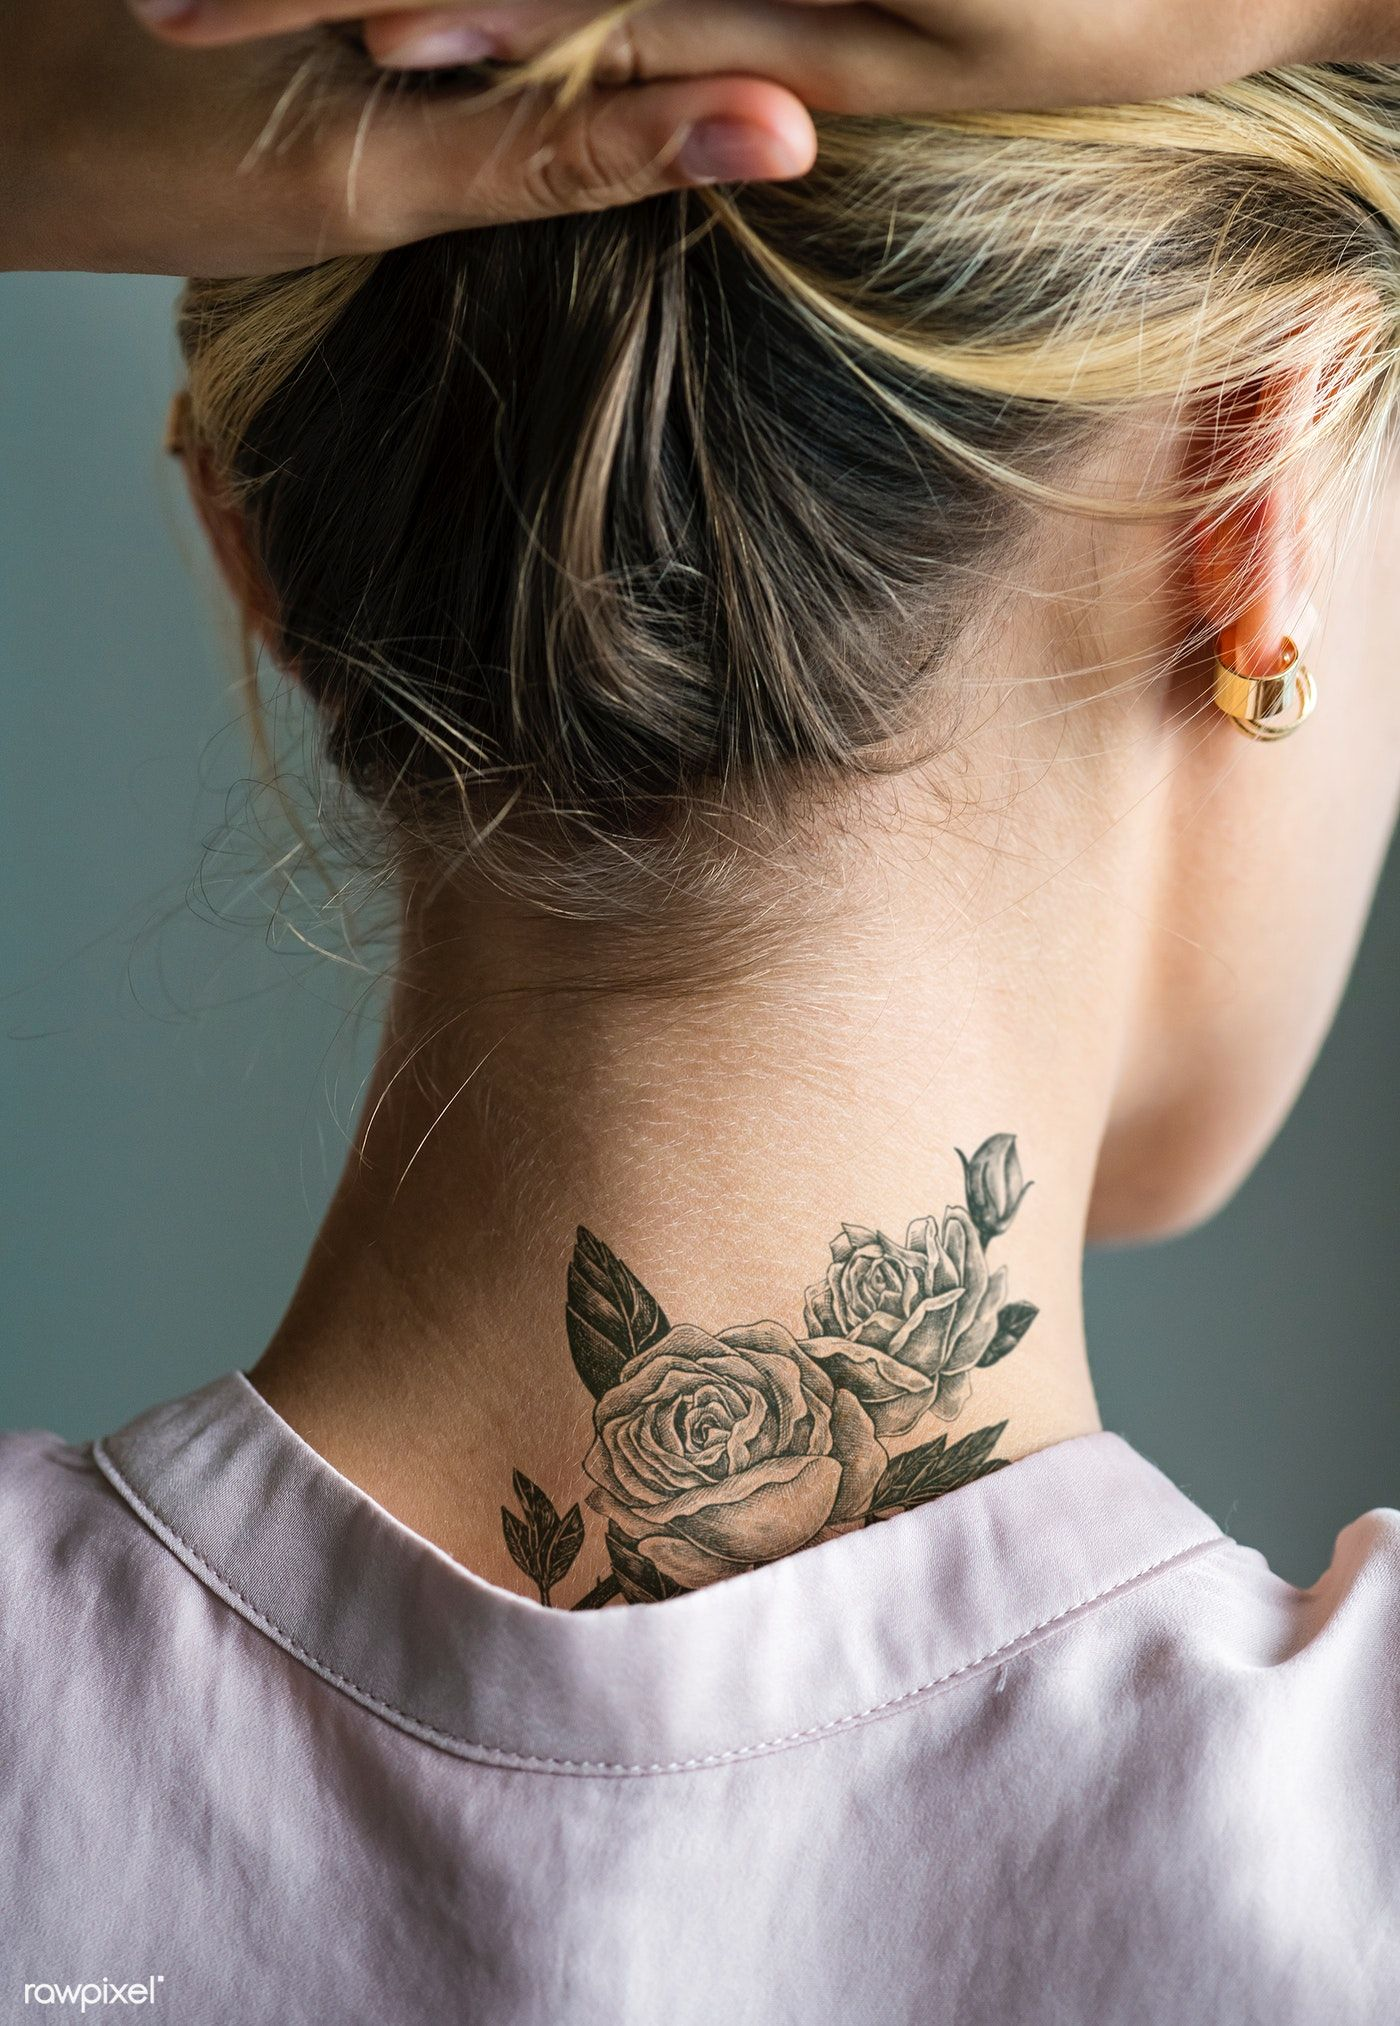 Back Neck Tattoo Of A Woman Premium Image By Rawpixel Com Ake Back Of Neck Tattoo Best Neck Tattoos Neck Tattoos Women